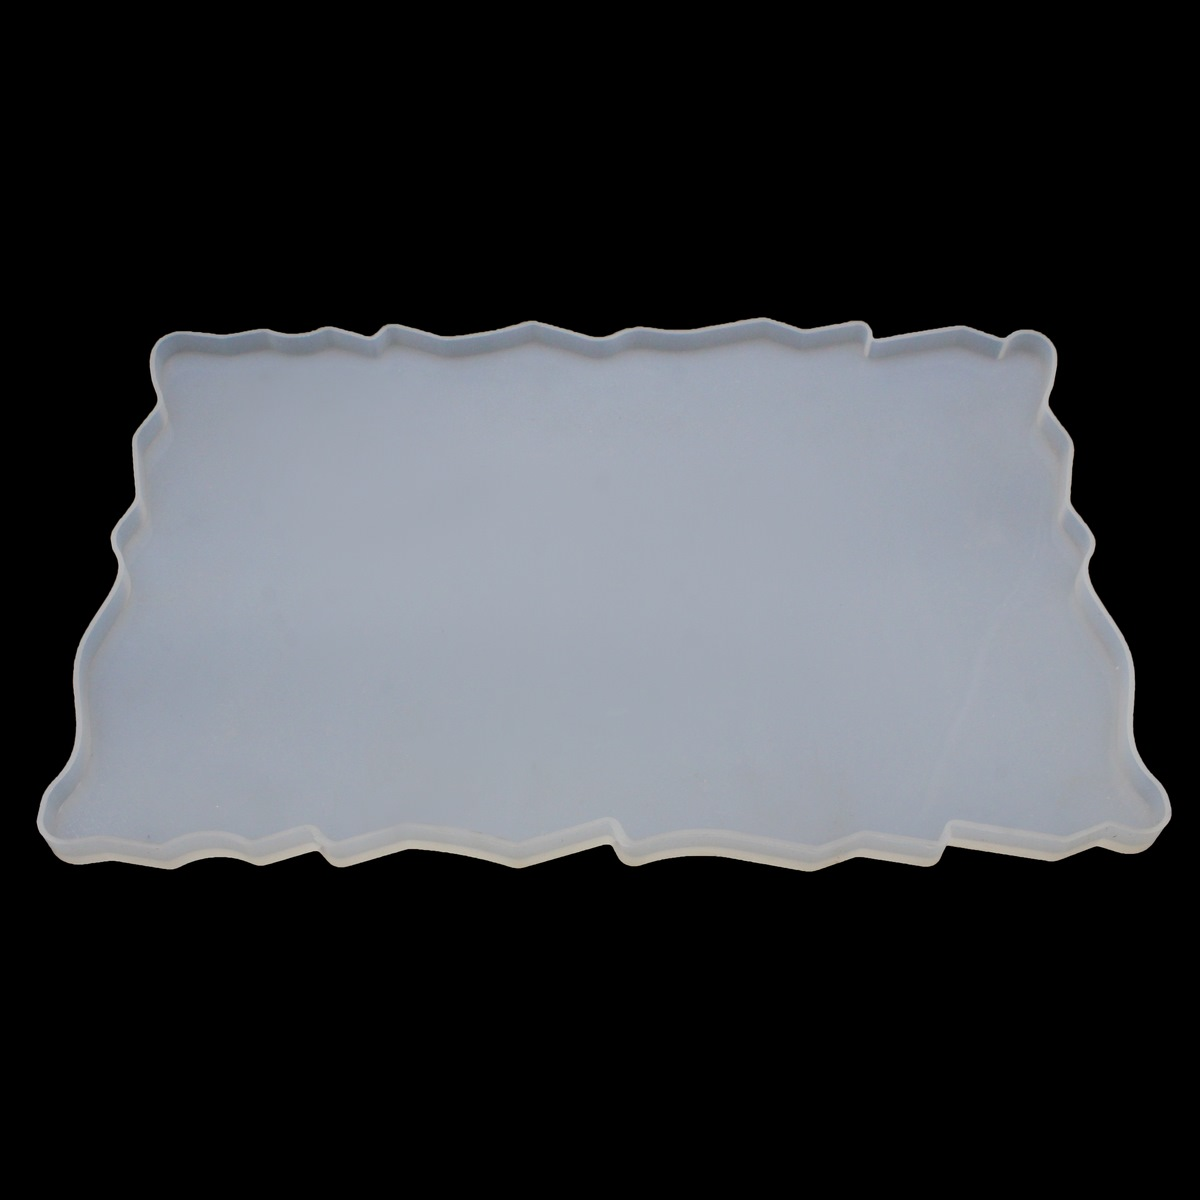 Resin Silicone Mould - Tray Shape